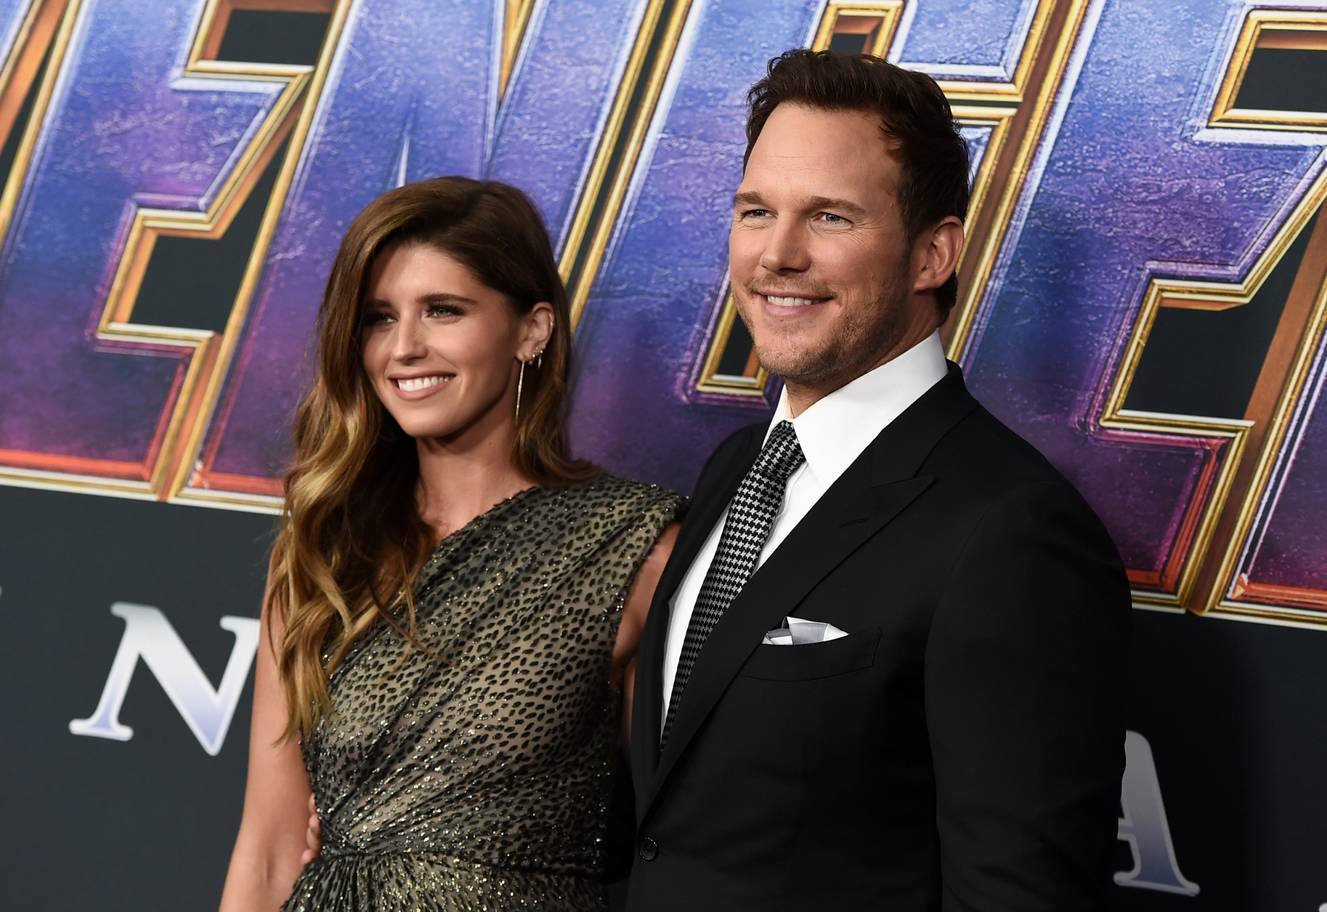 Chris Pratt at Avengers Endgame premiere